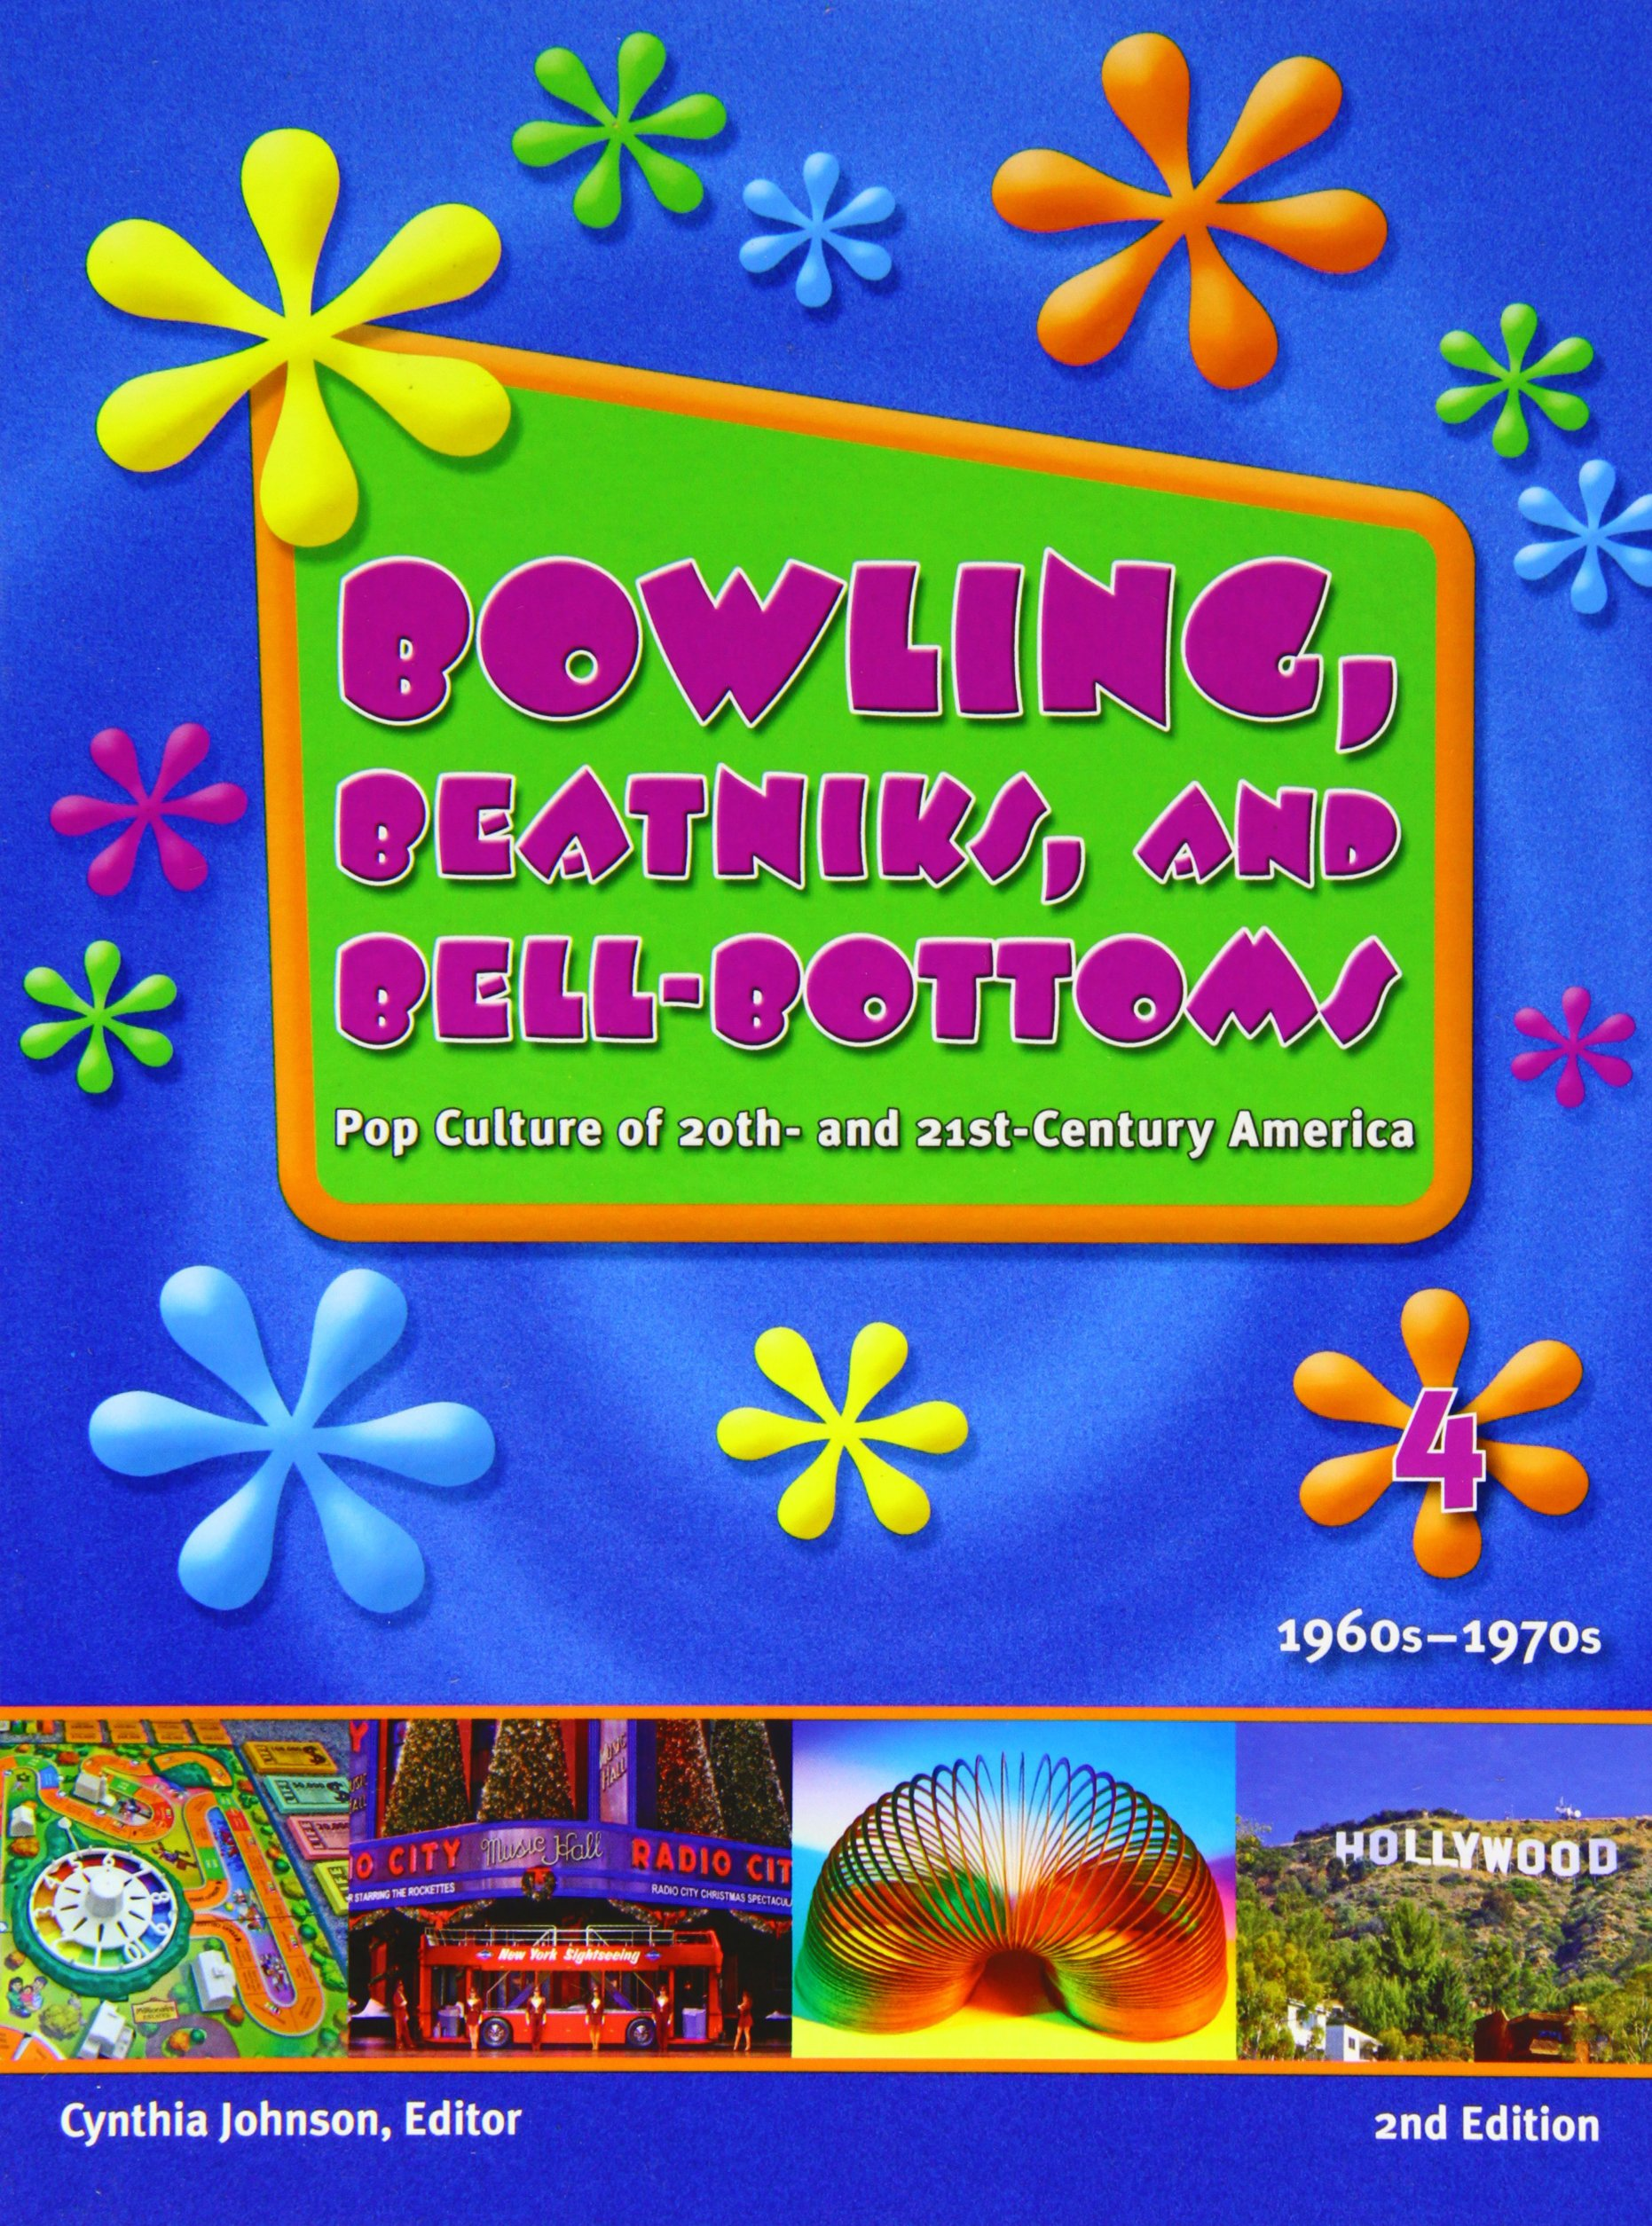 Buy Bowling, Beatniks, and Bell-Bottoms: Pop Culture of 20th